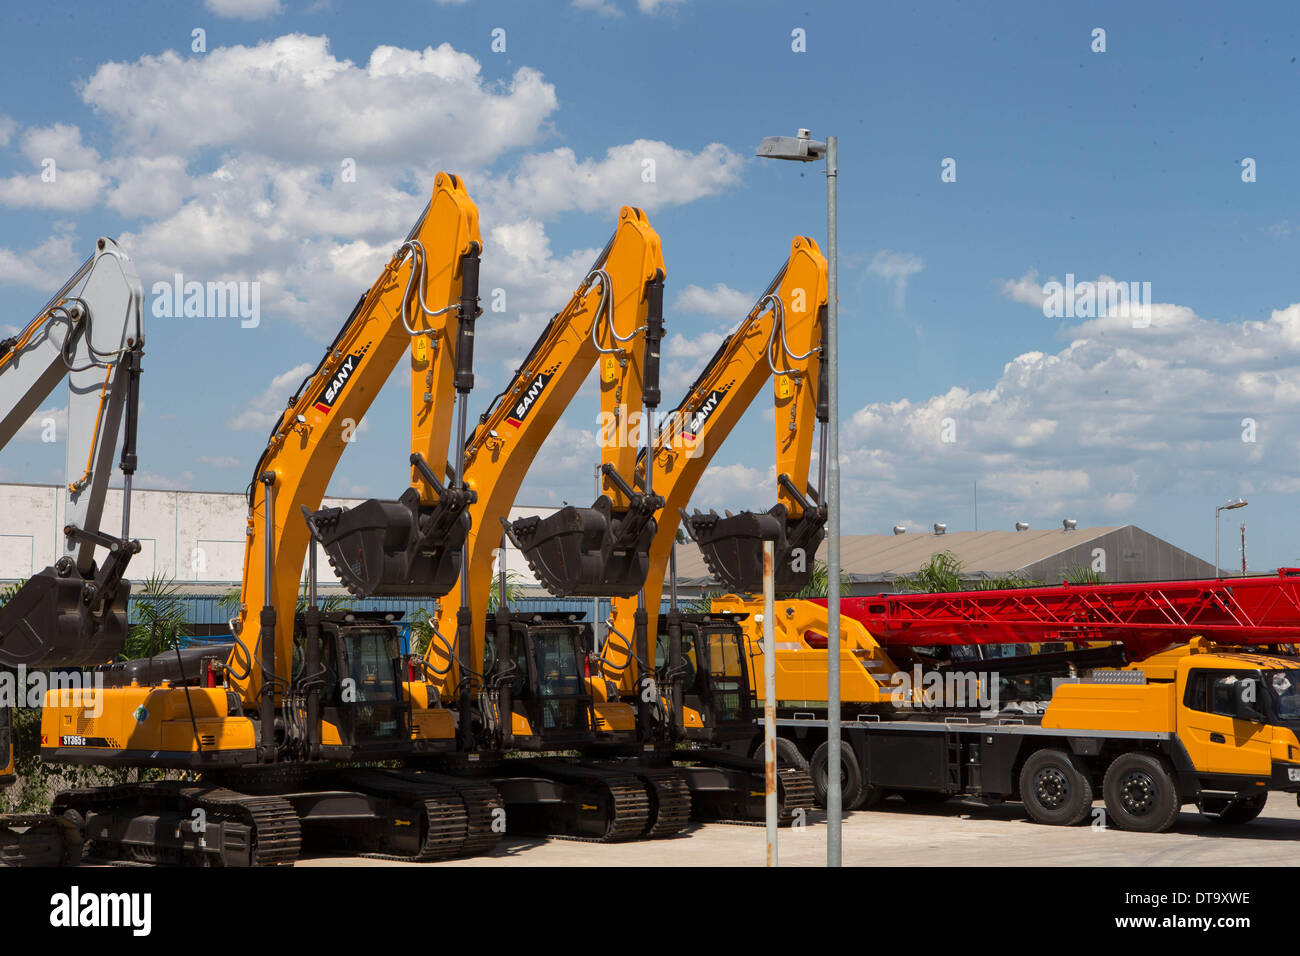 Rio De Janeiro. 6th Feb, 2014. Photo taken on Feb. 6, 2014 shows machineshop trucks in Chinese multinational heavy machinery manufacturing company Sany in San Jose Dos Campos, Brazil. Chinese Sany Group has gained a proven track record in Brazil due to its localization strategy. © Xu Zijian/Xinhua/Alamy Live News - Stock Image